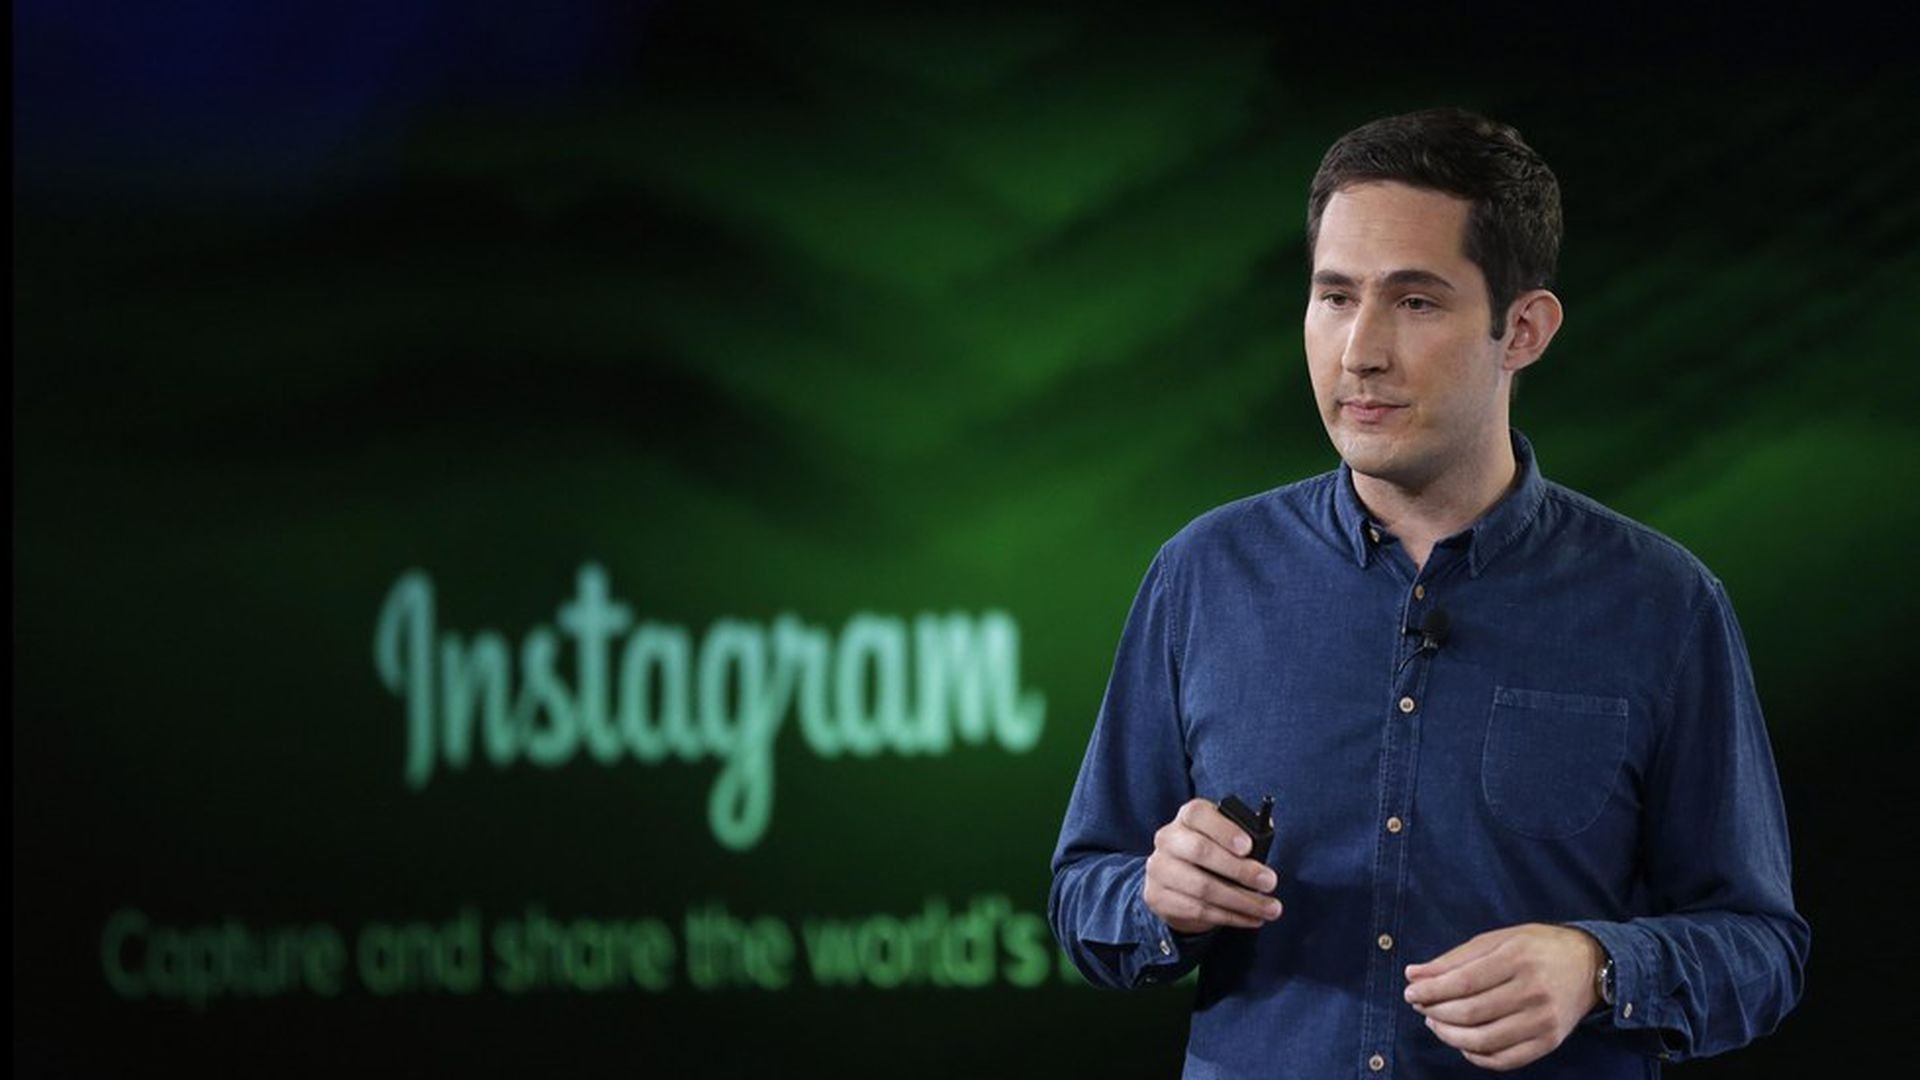 Instagram co-founder shares one thing he does every day